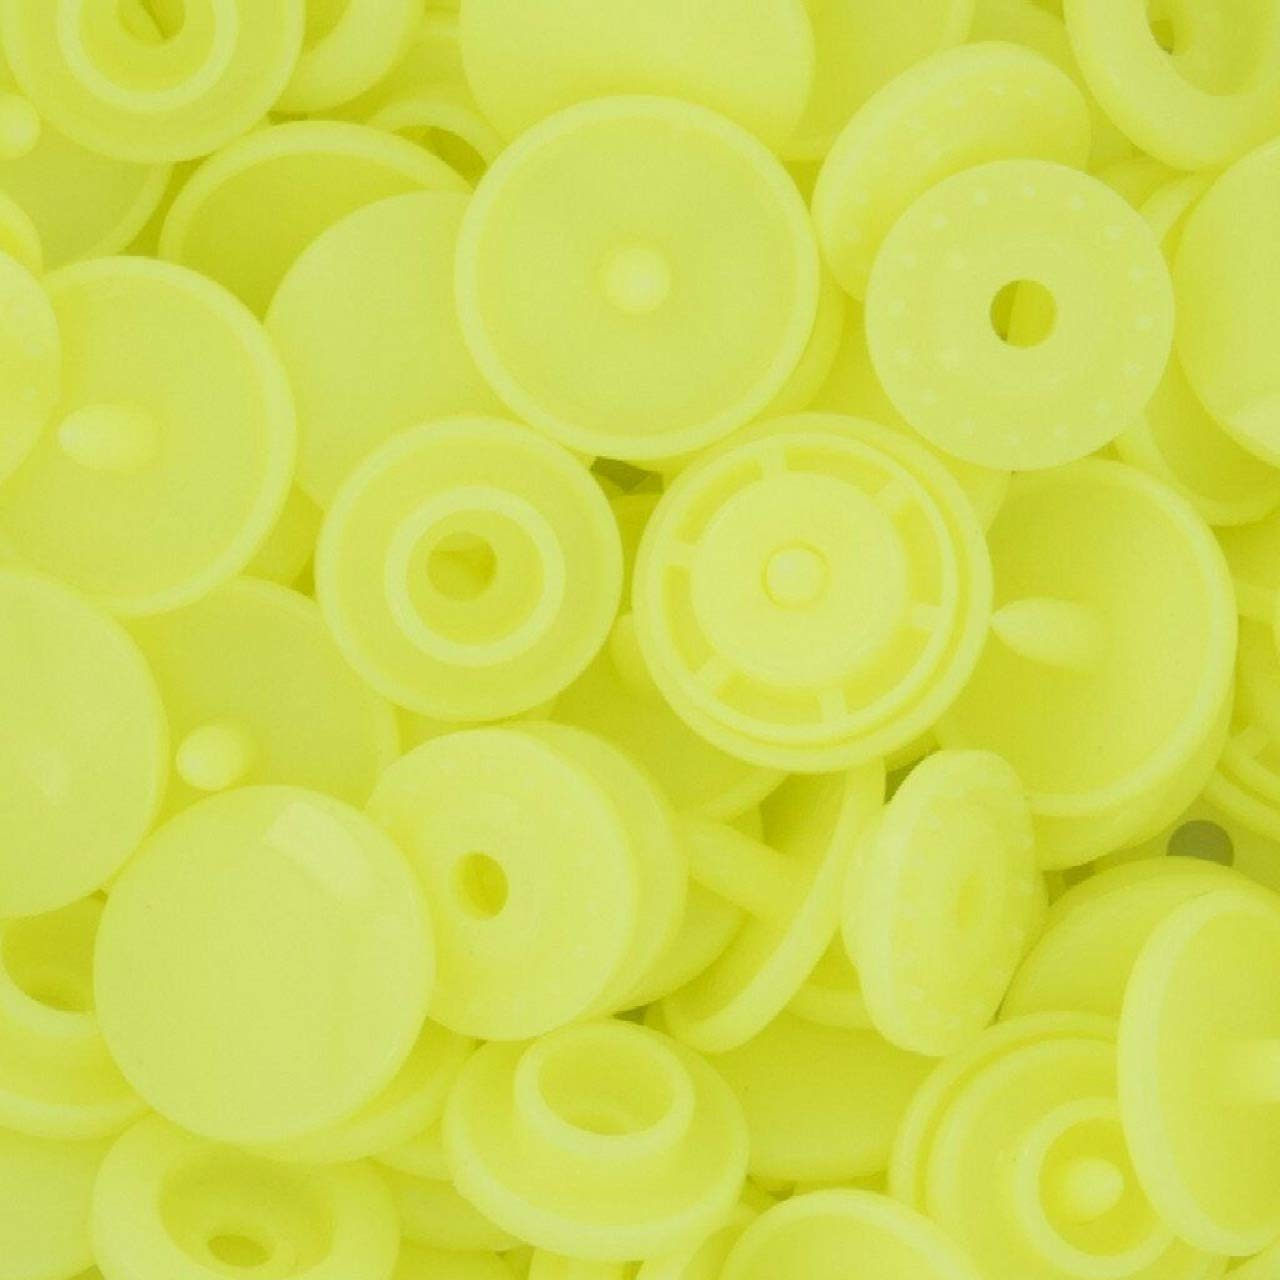 1000 Set Plastic Resin Snaps Crafts (Neon Yellow) WT by Eternal Cover